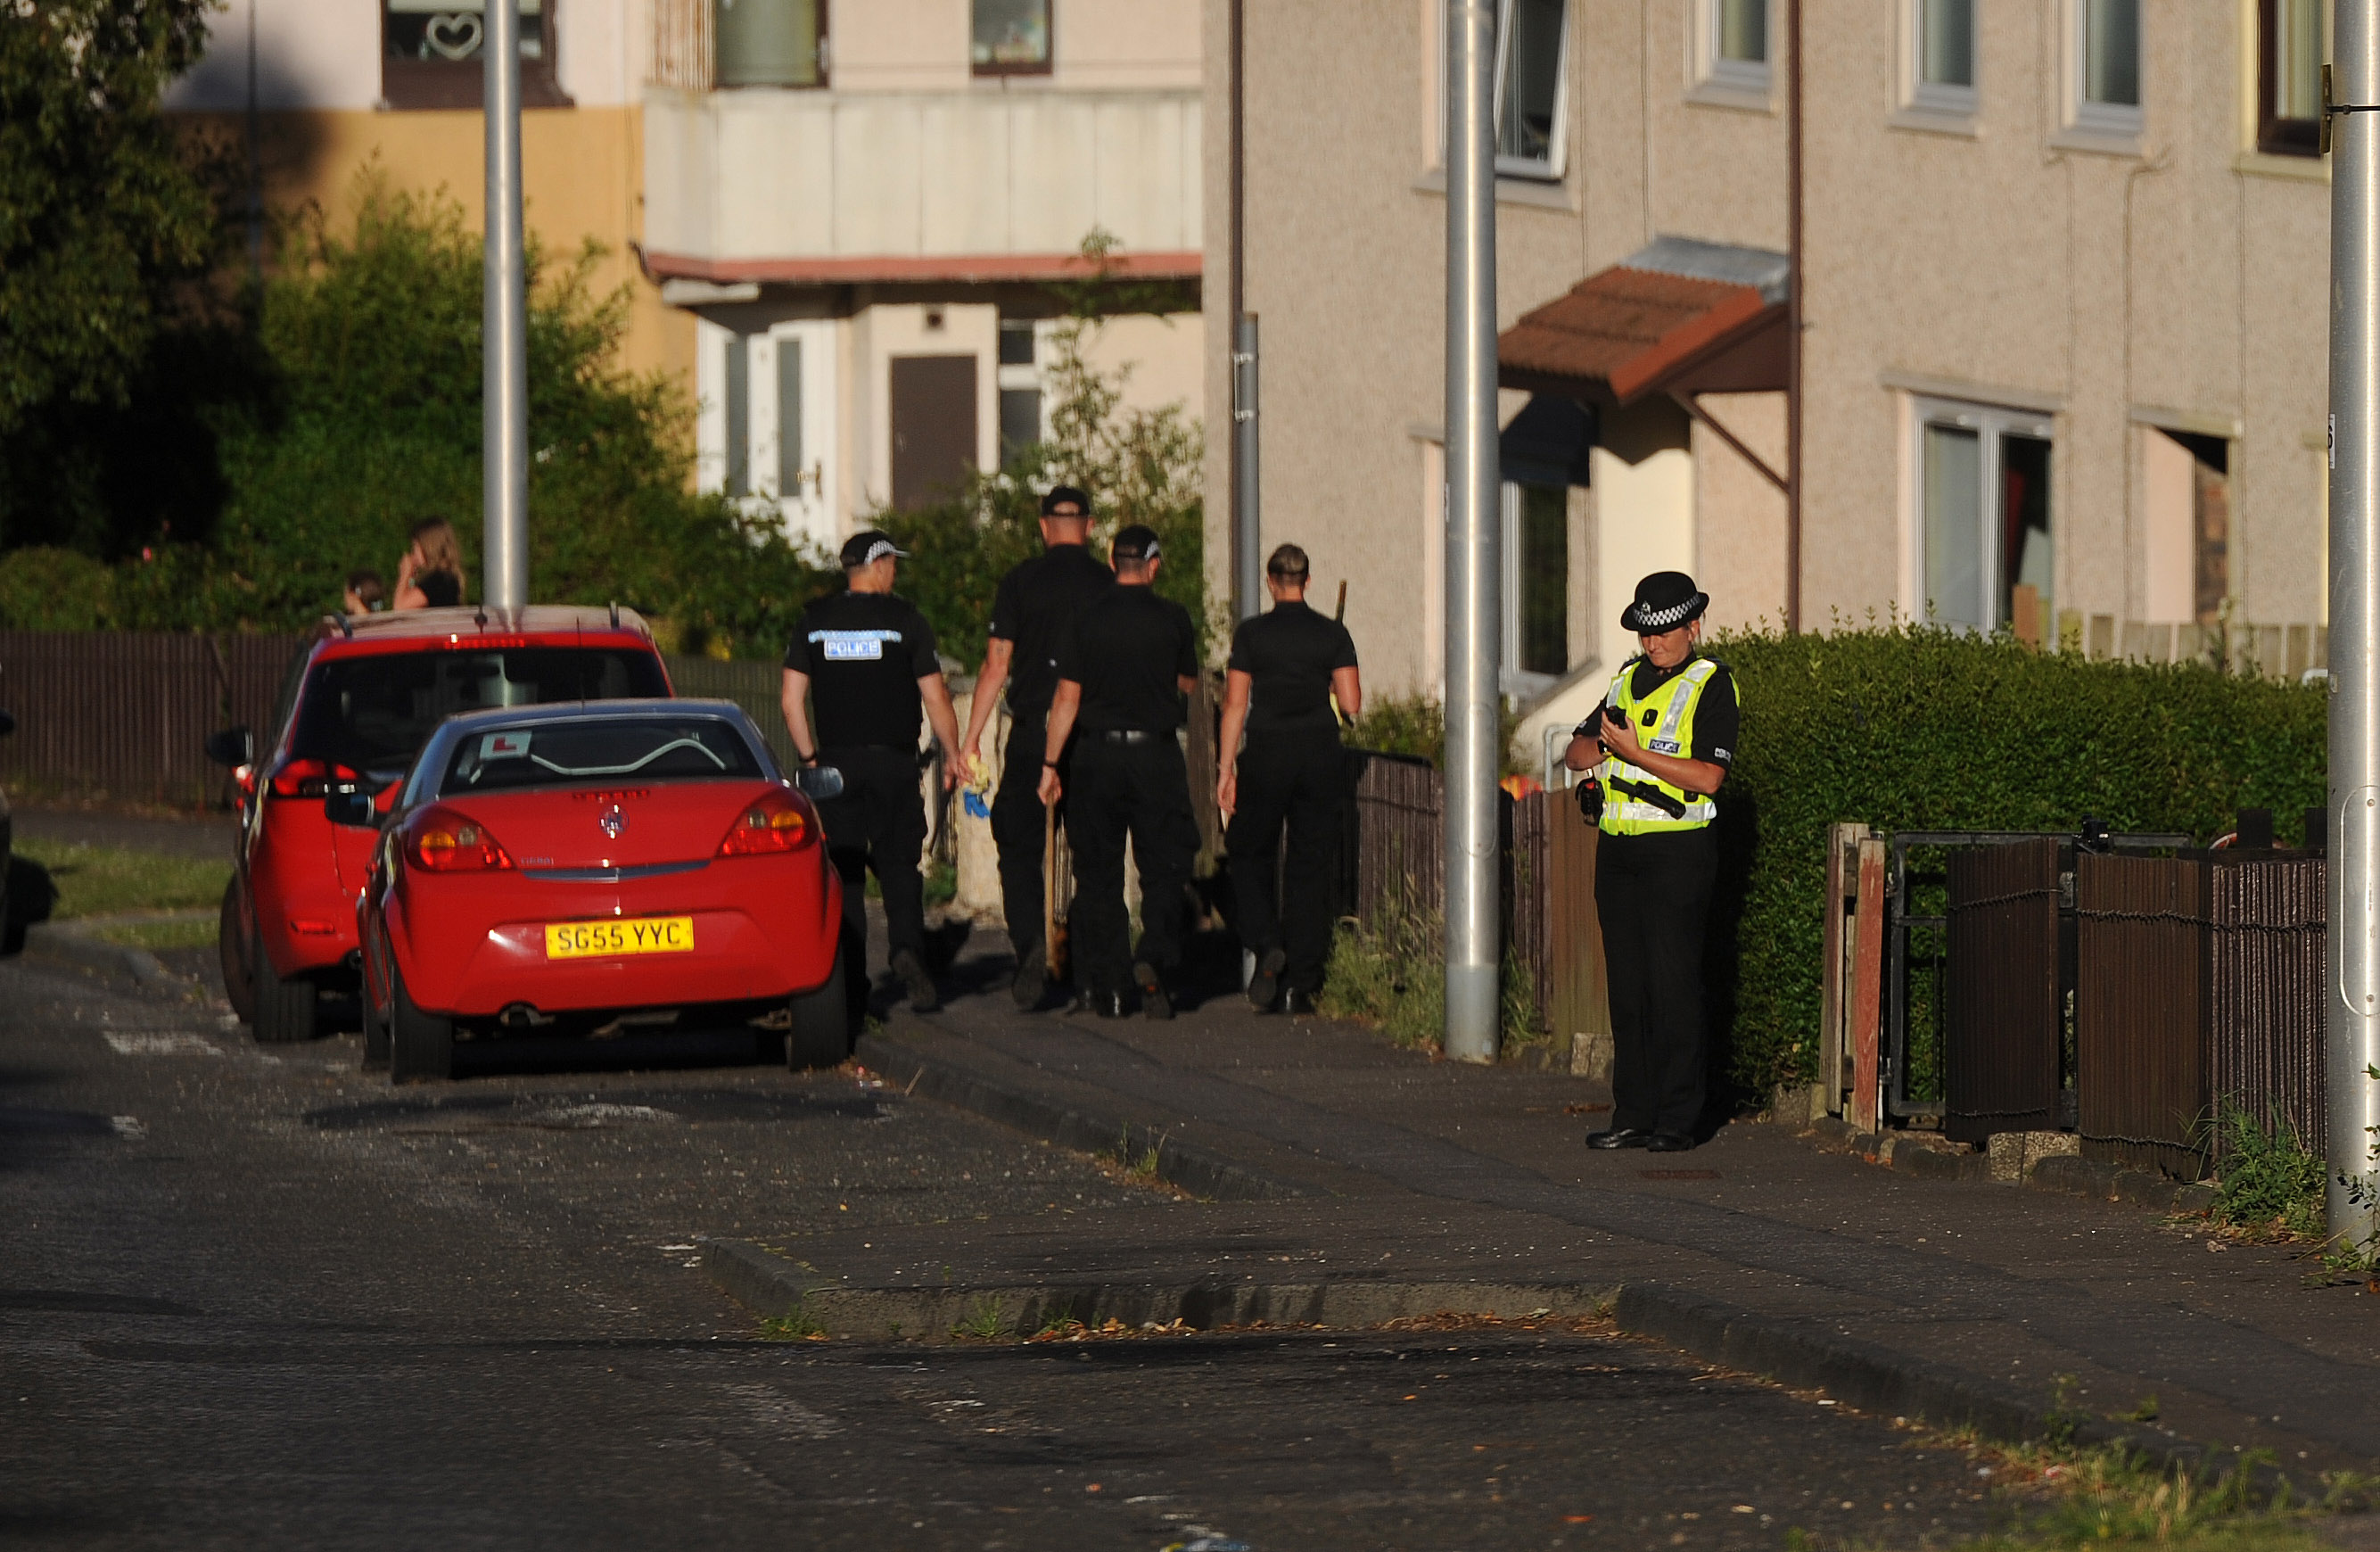 Police search team in Kirkcaldy's Valley Gardens.  (c) David Wardle